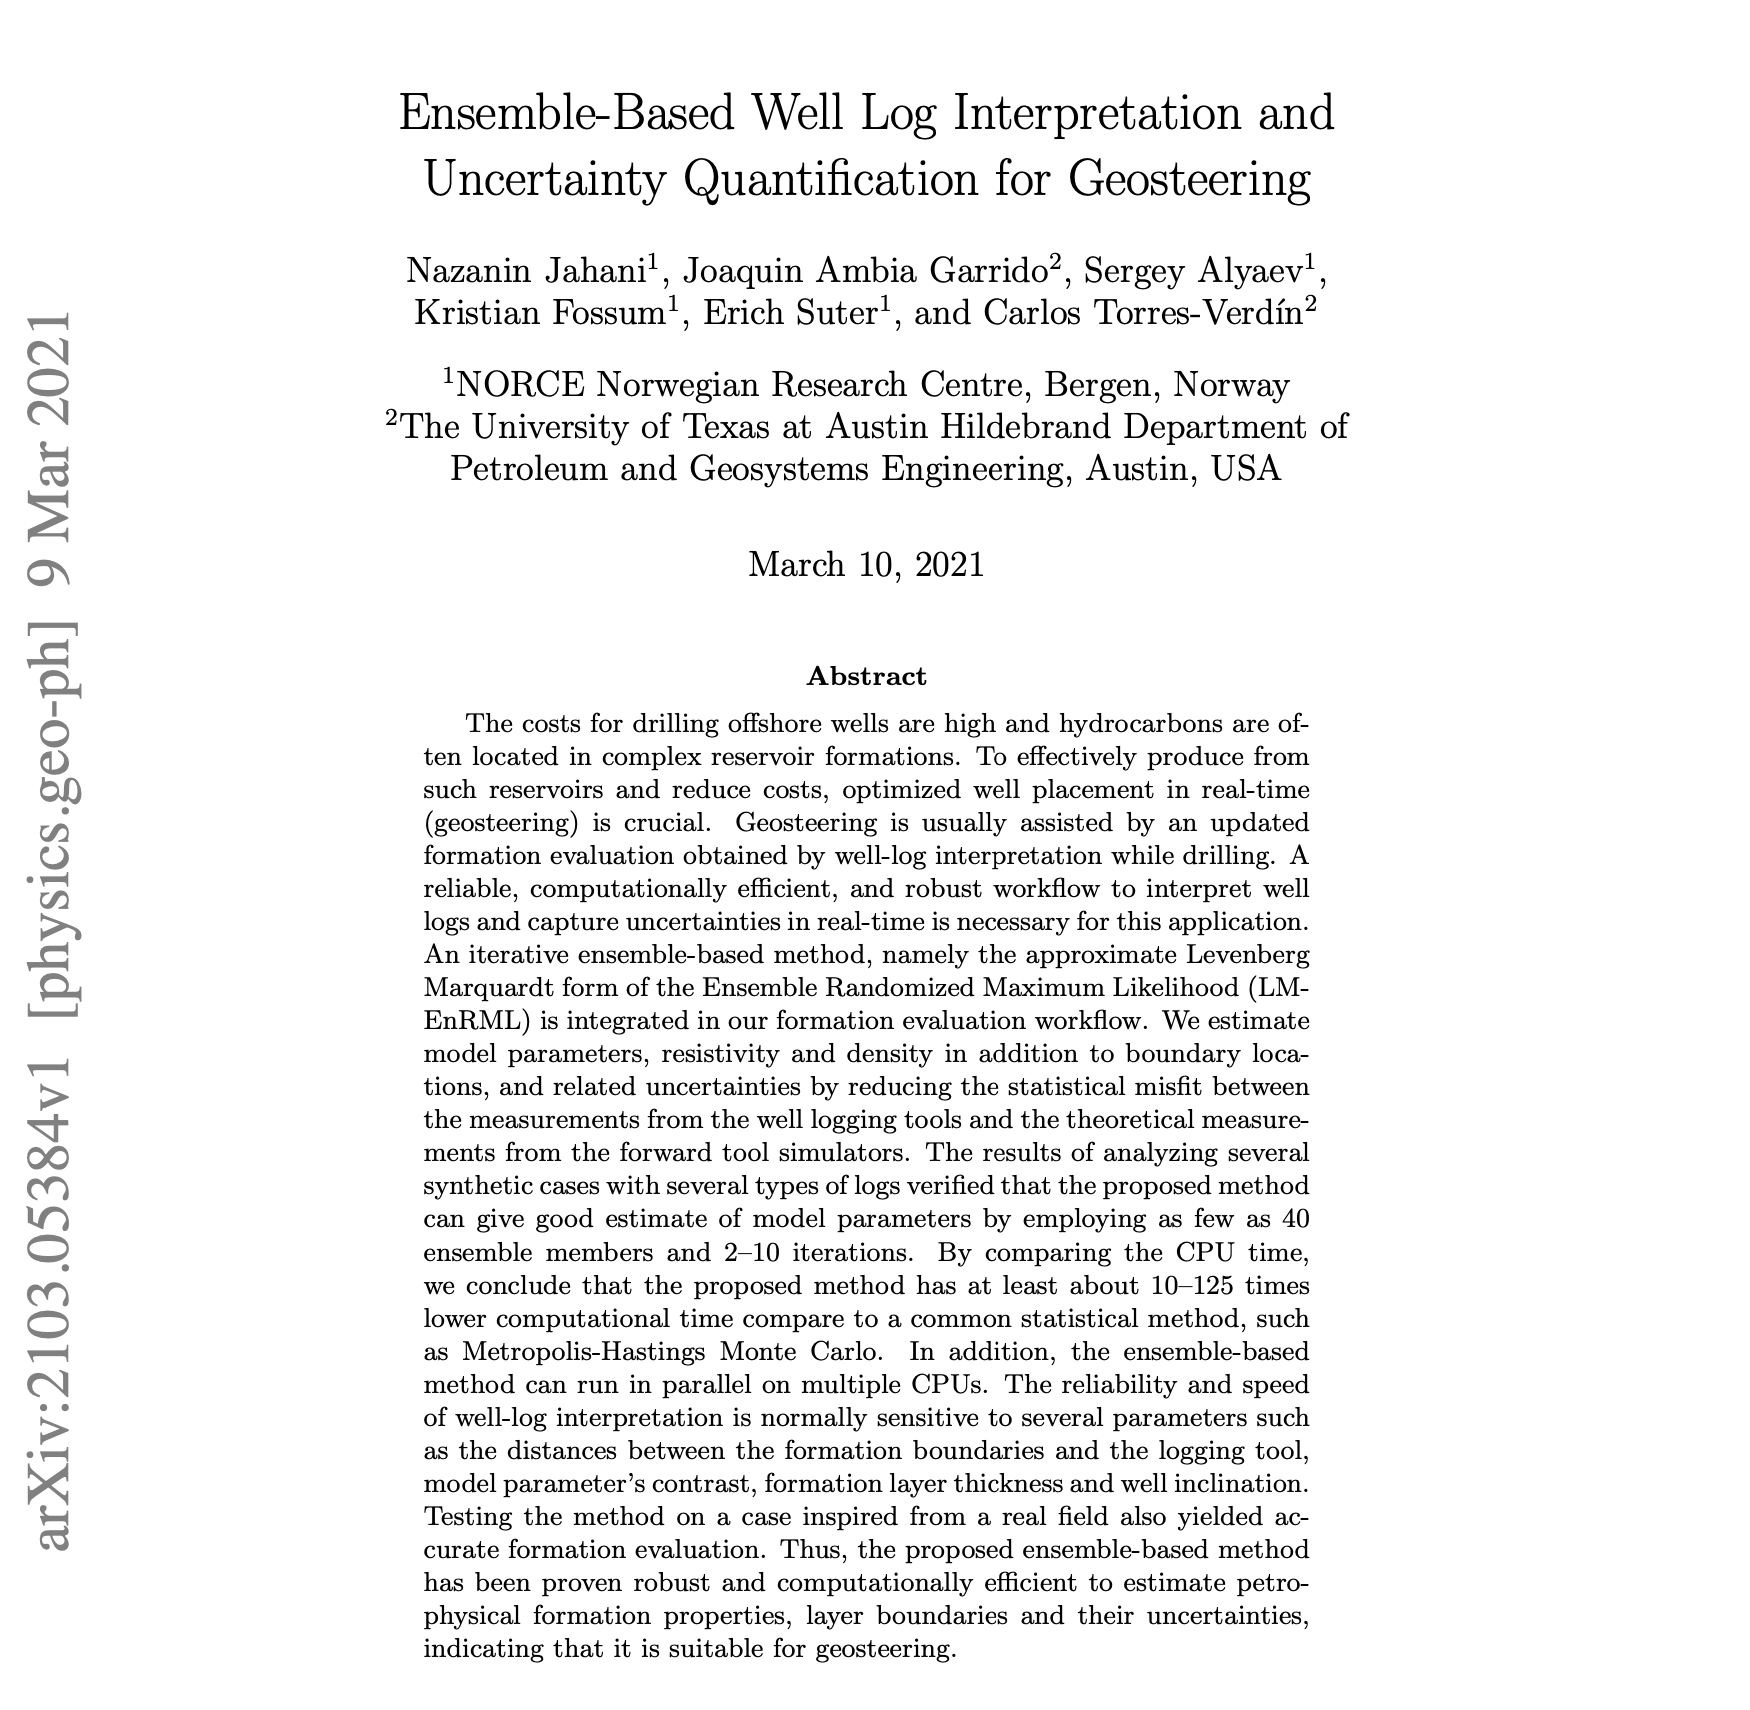 Ensemble-Based Well Log Interpretation and Uncertainty Quantification for Geosteering